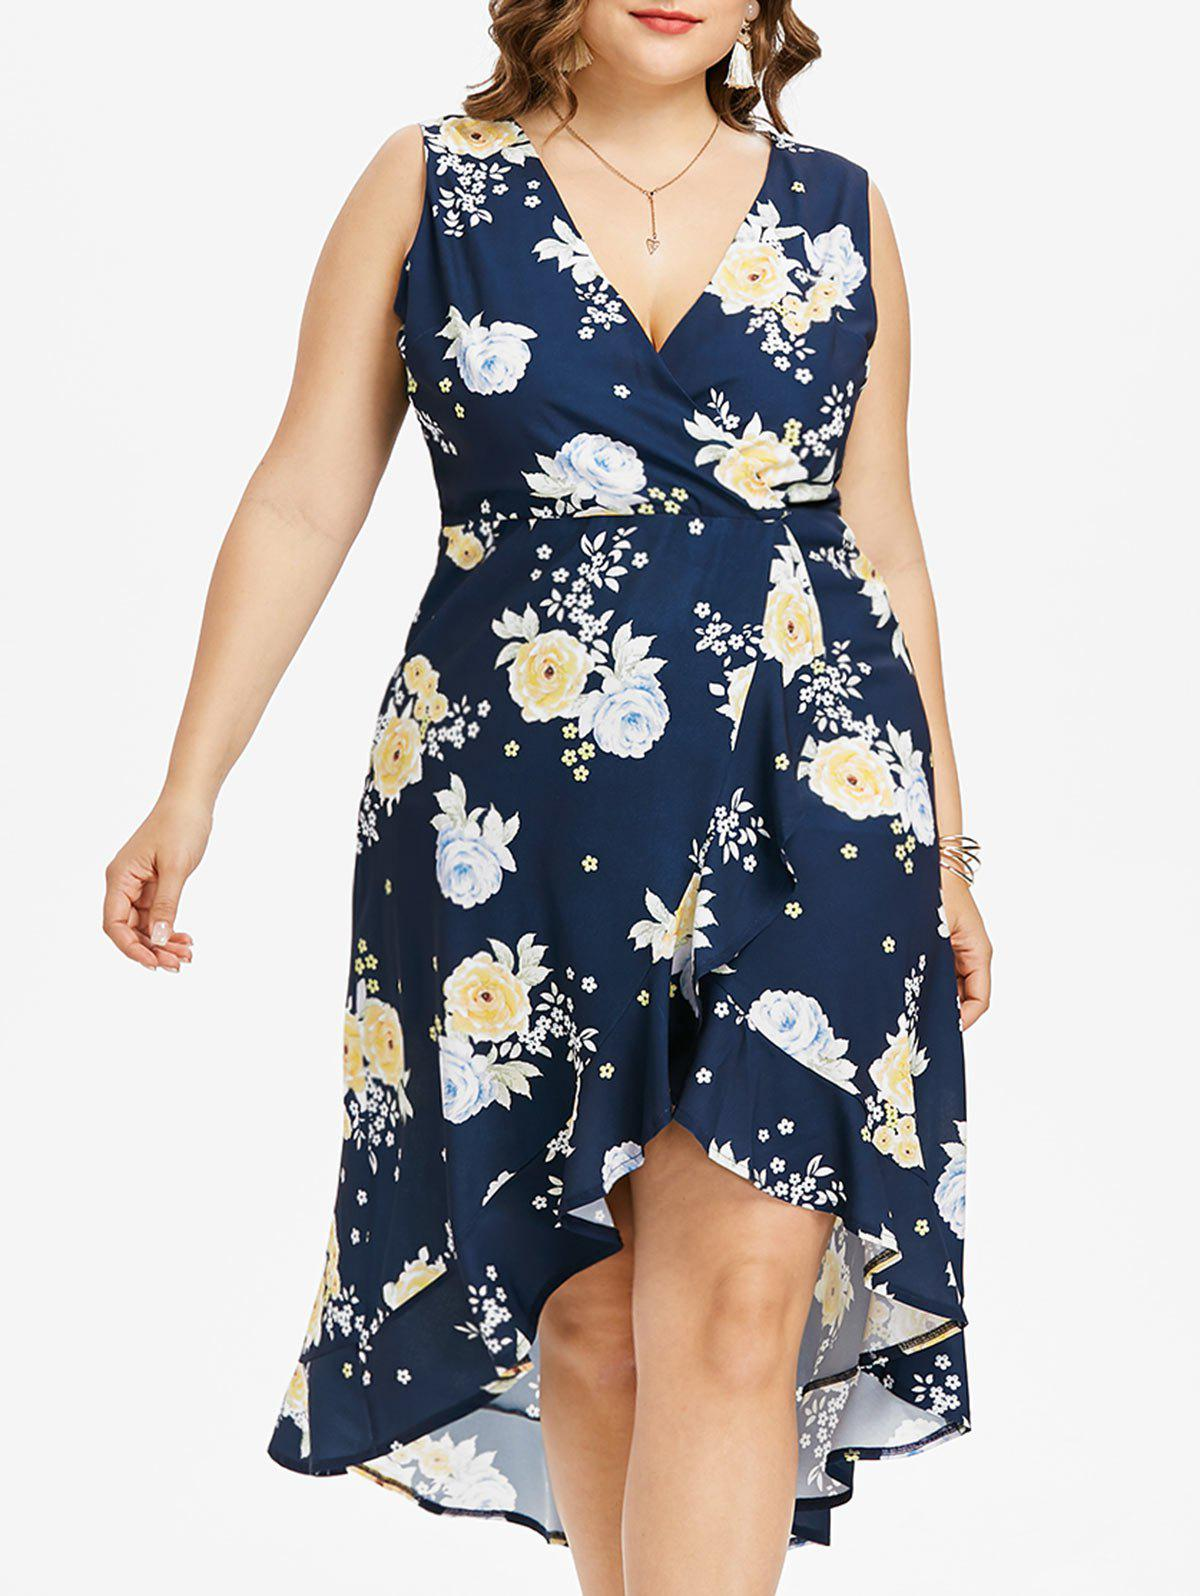 Sale Plus Size Sleeveless High Low Floral Dress